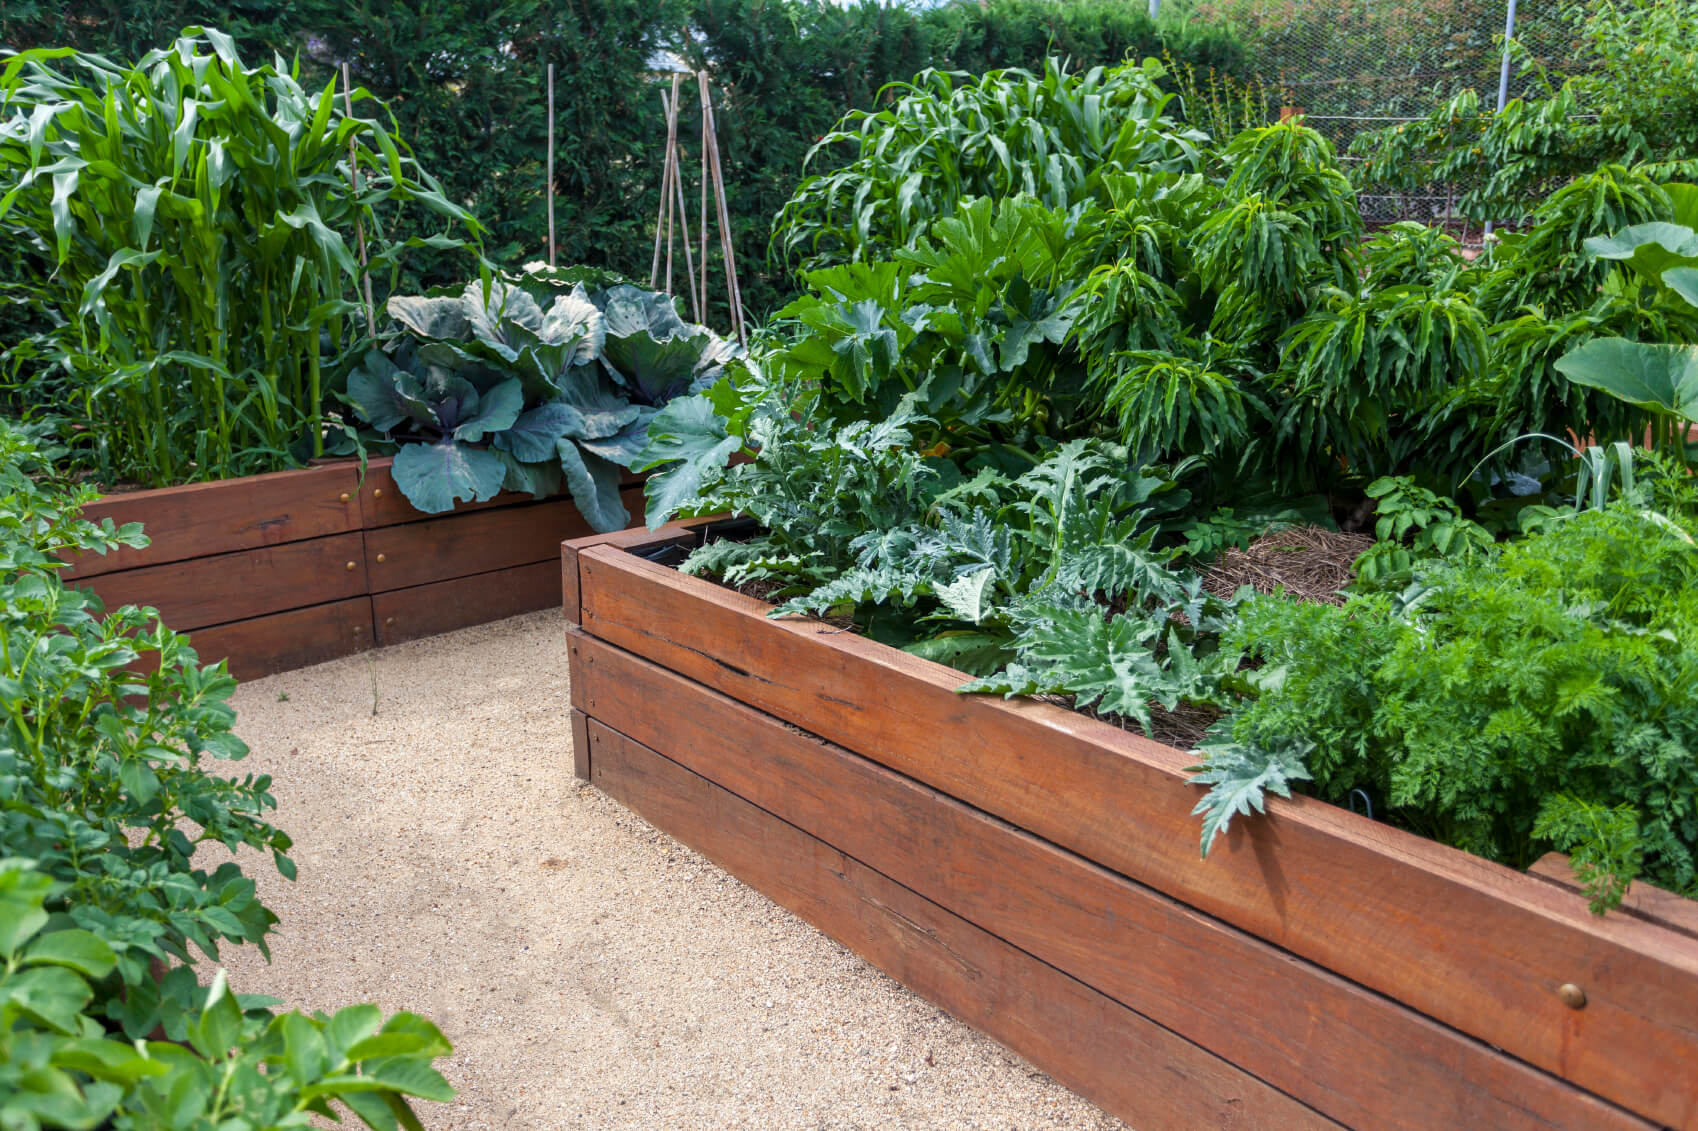 Ideas For Raised Garden Beds so maybe you arent looking for a unique design maybe you just want something that will keep your plants organized and looking sharp but will also be easy 41 Backyard Raised Bed Garden Ideas